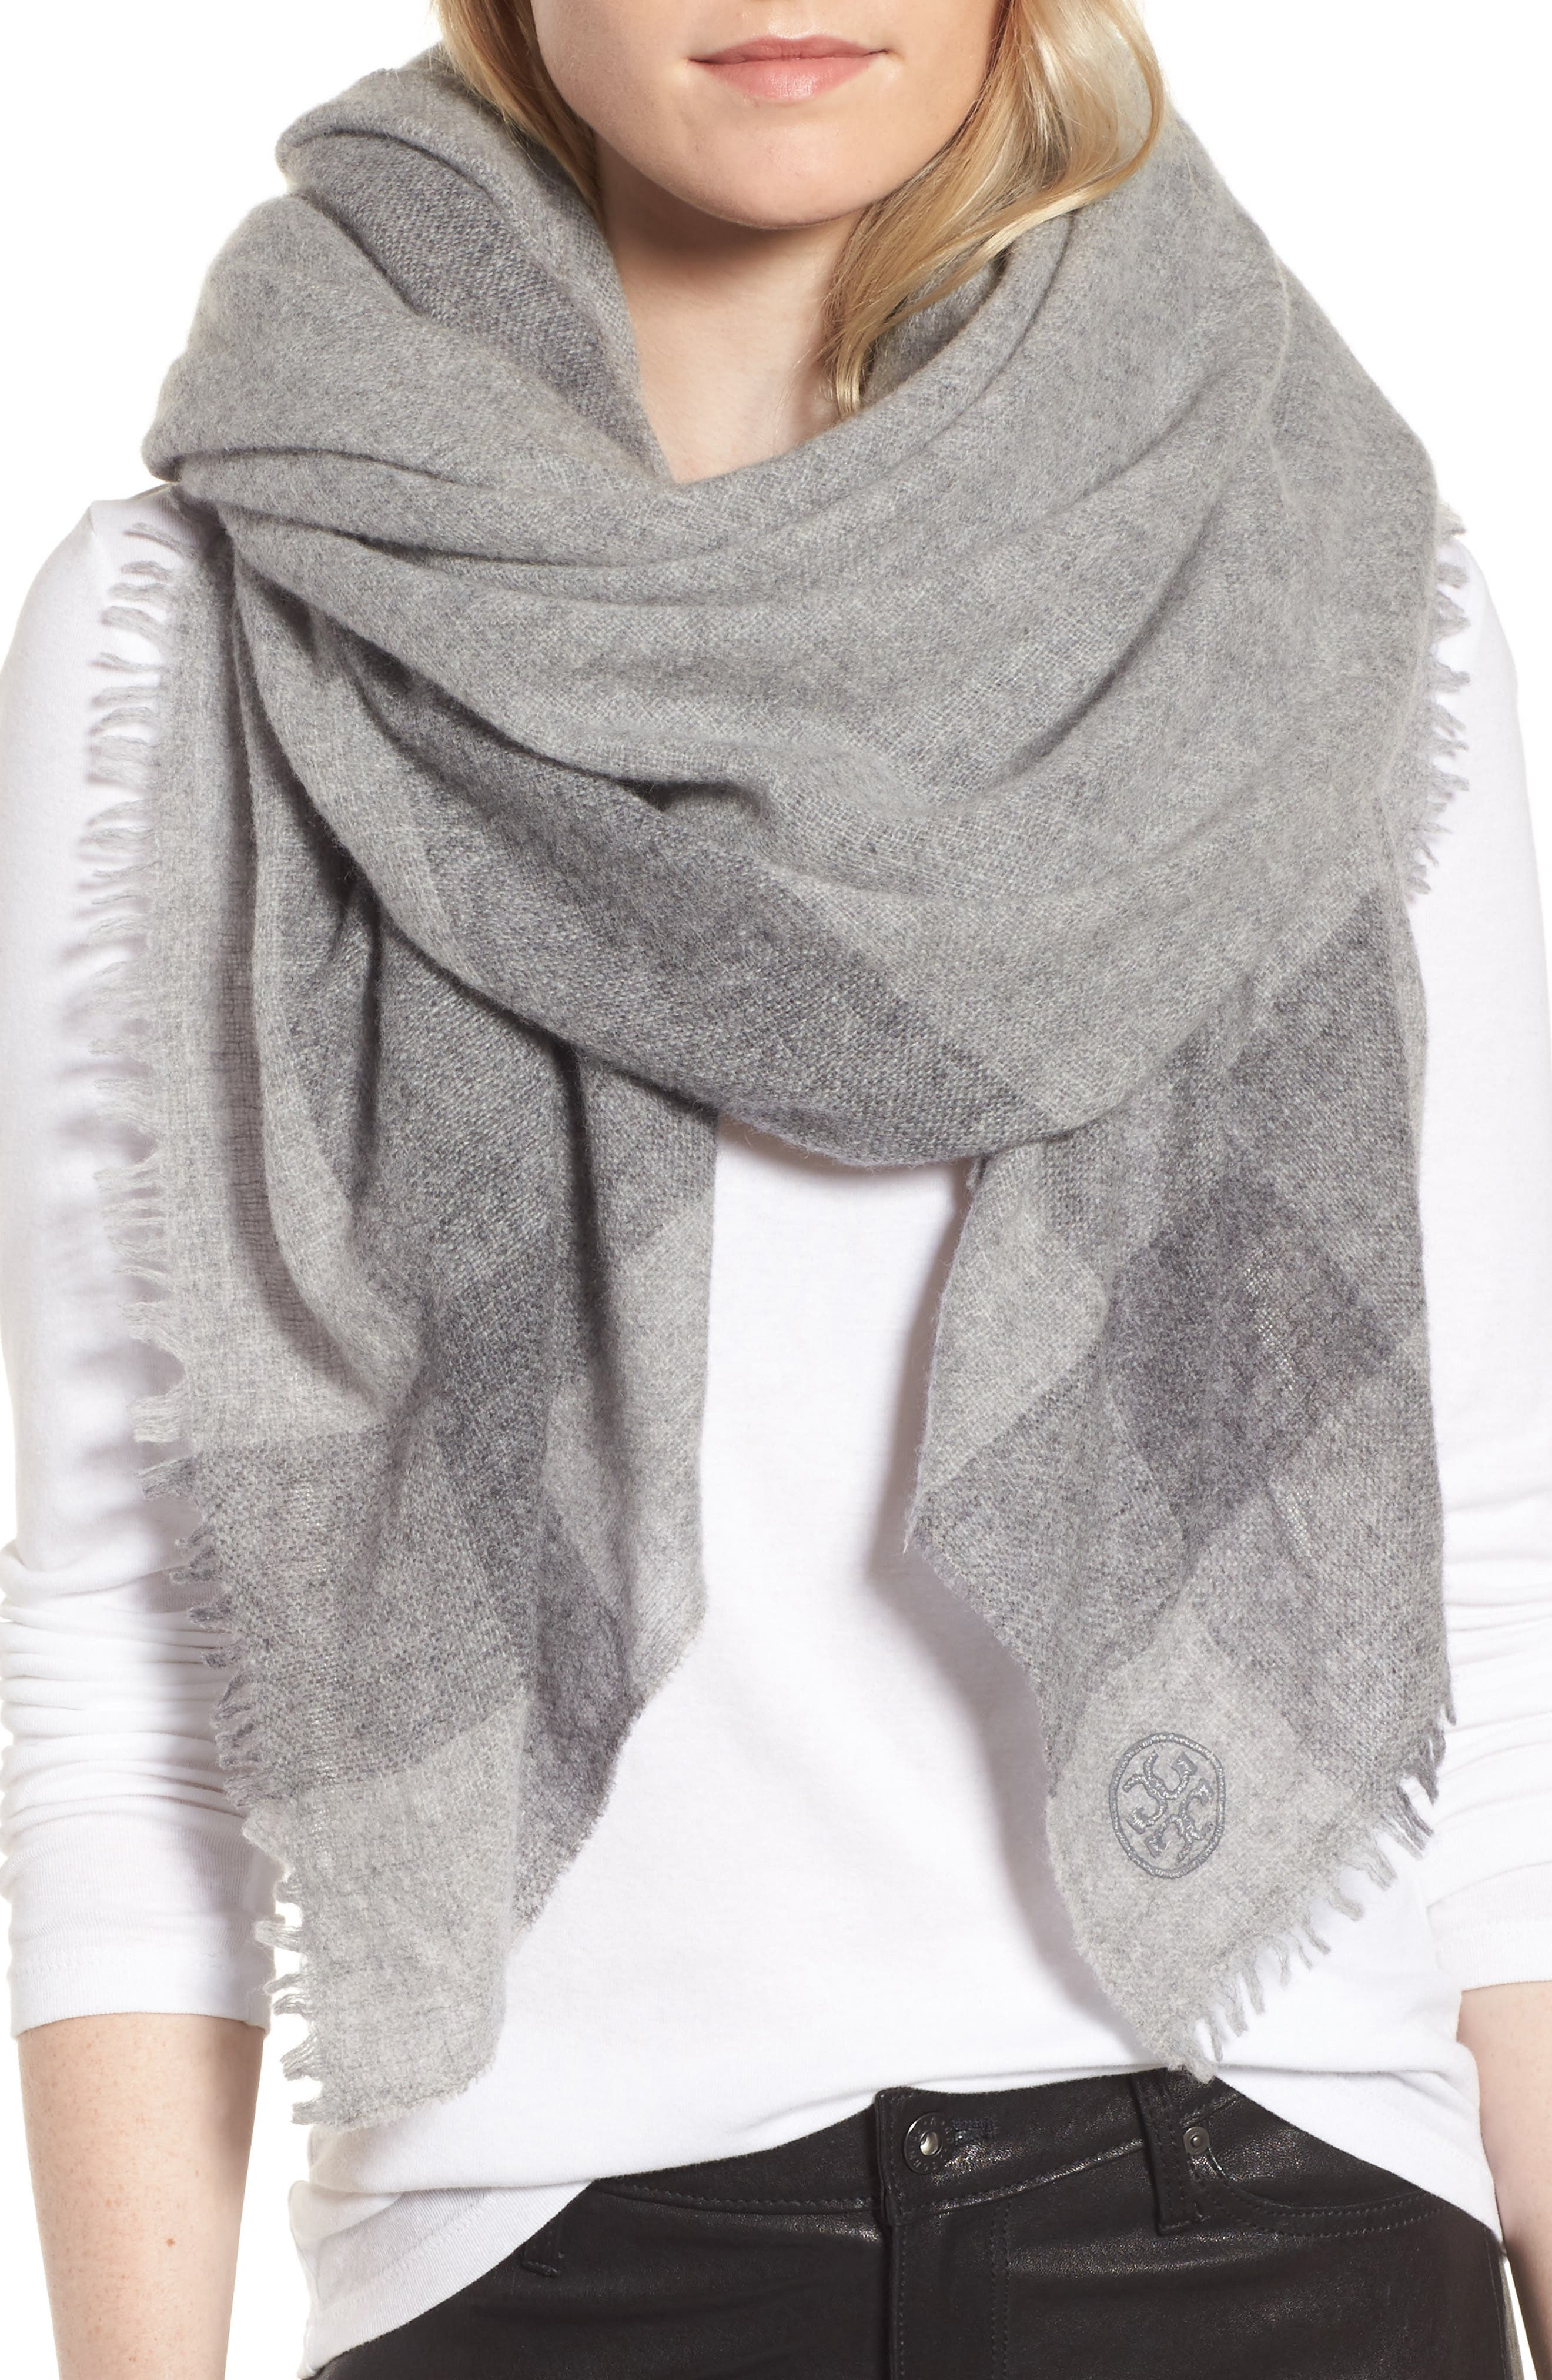 Check Wool & Cashmere Scarf,                         Main,                         color, 039